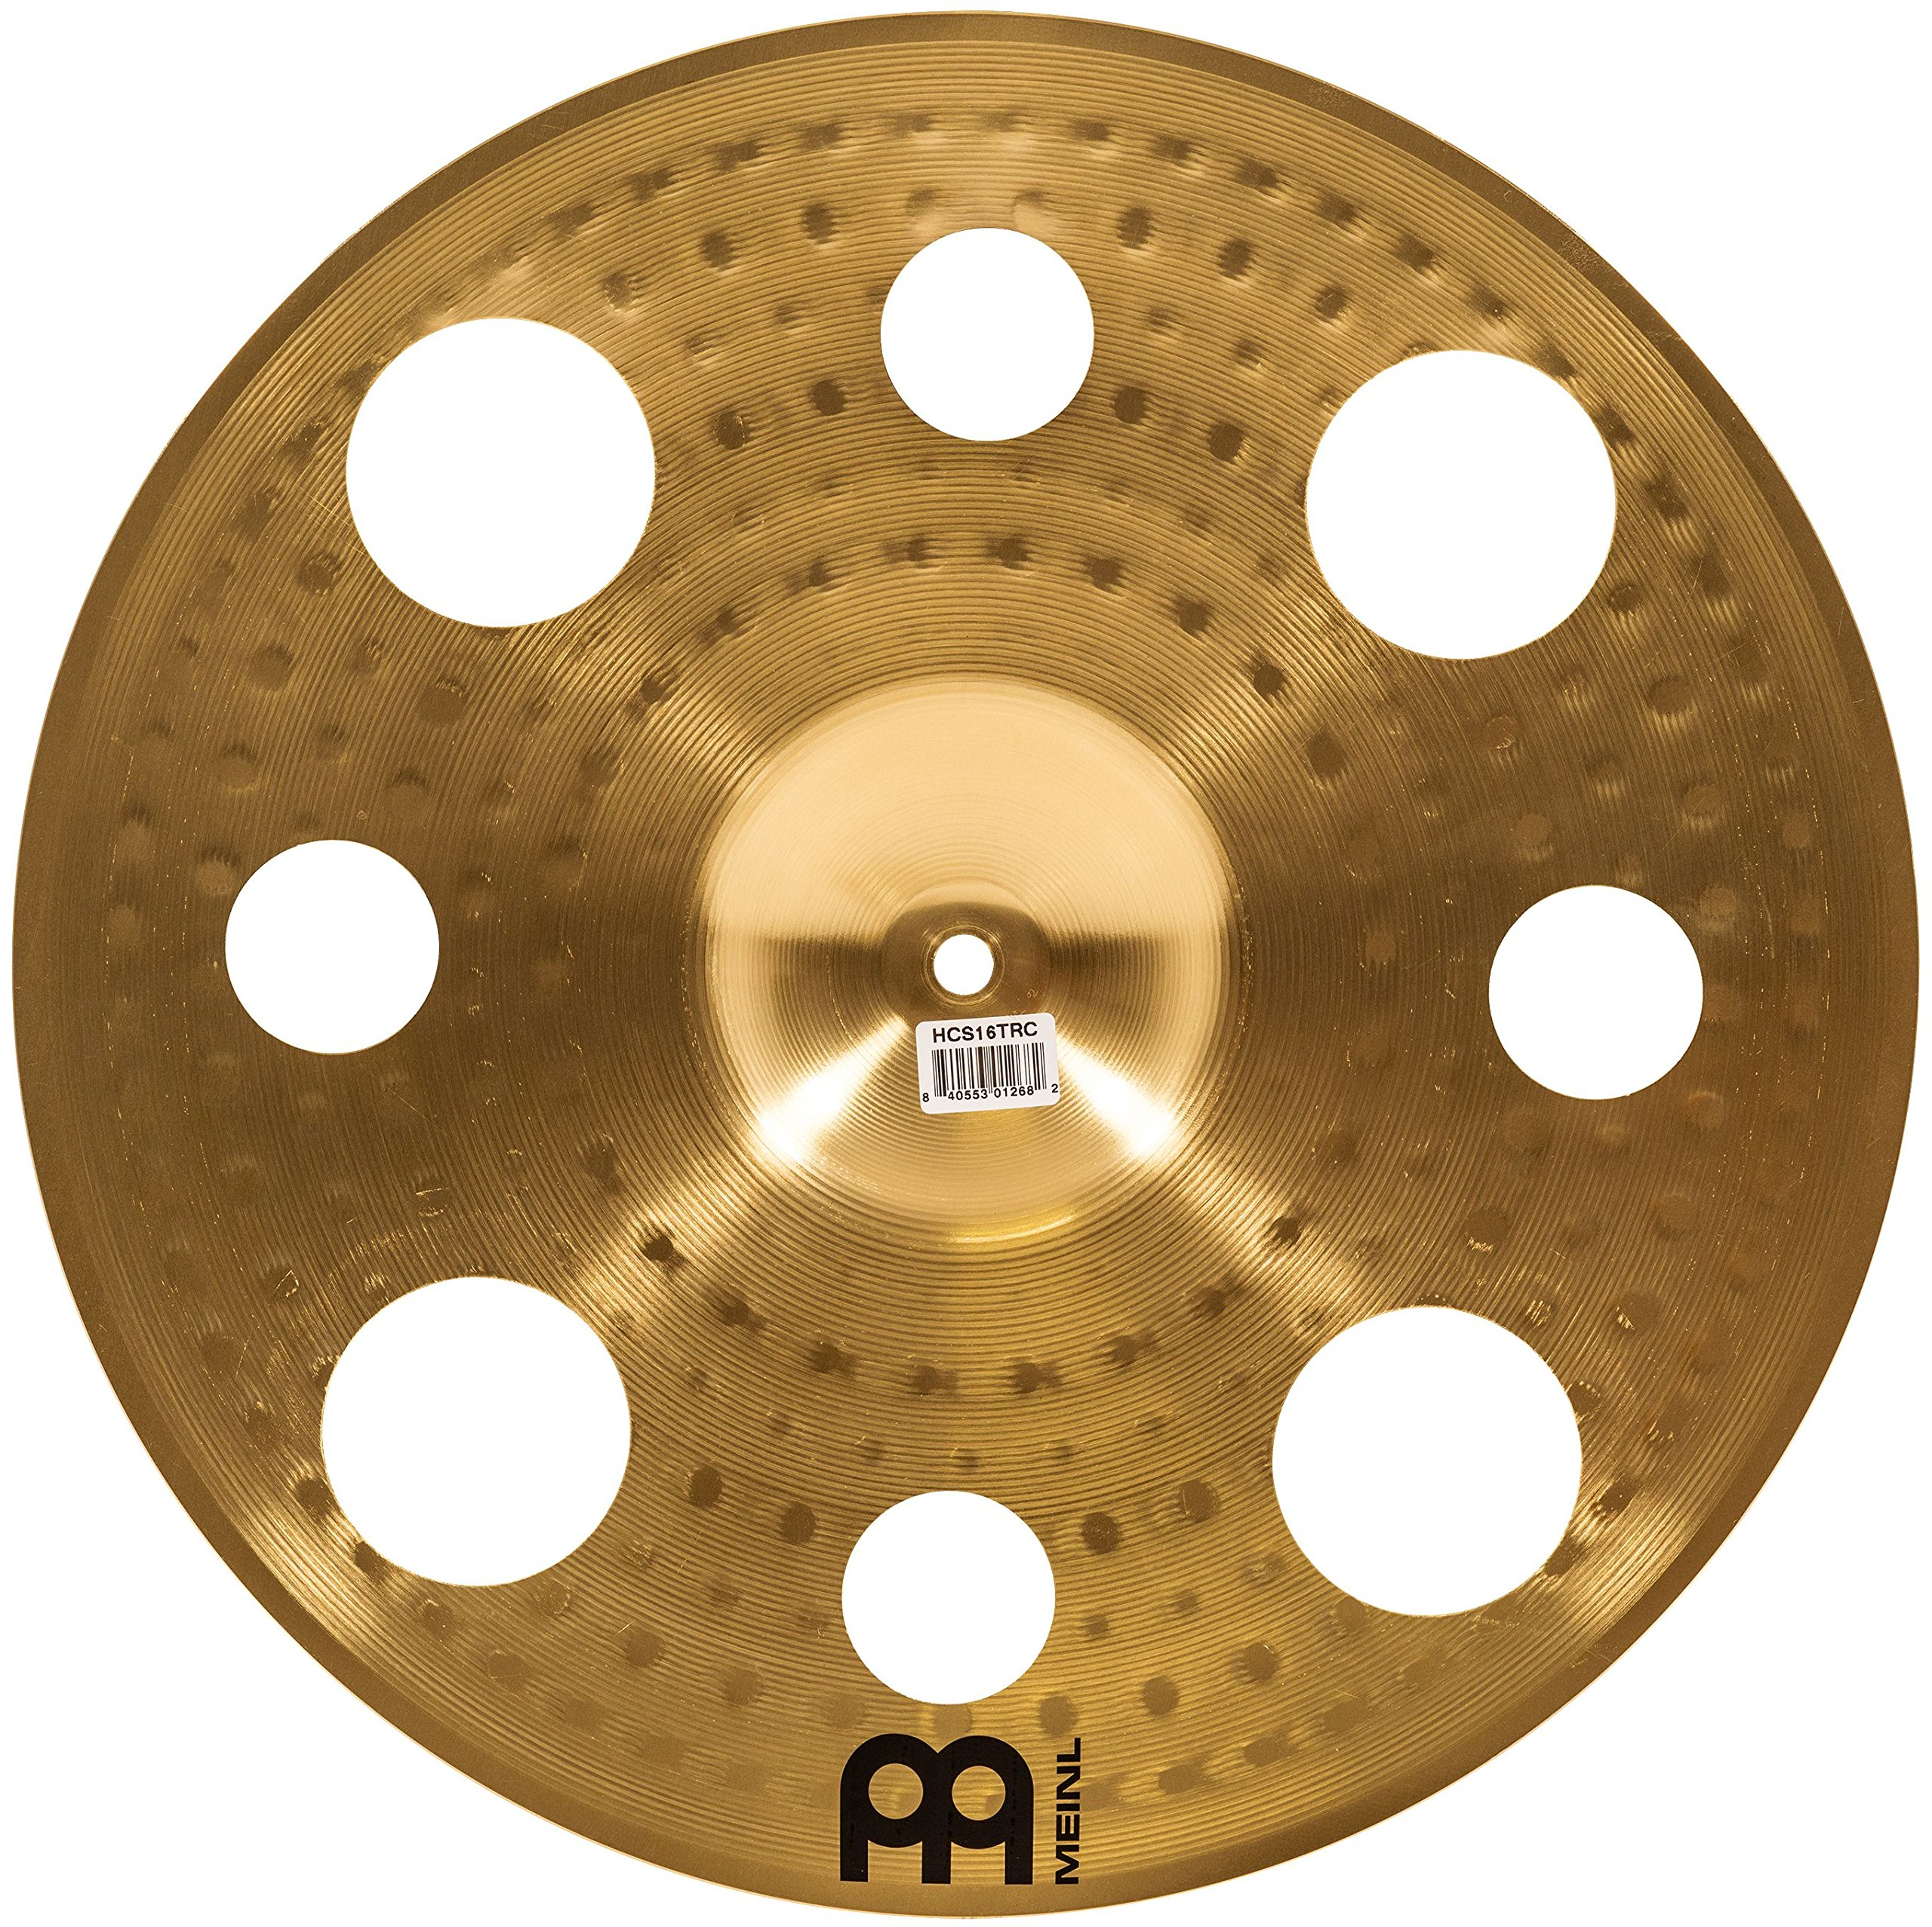 Meinl Cymbals HCS16TRC 16'' HCS Brass Trash Crash Cymbal for Drum Set (VIDEO) by Meinl Cymbals (Image #2)